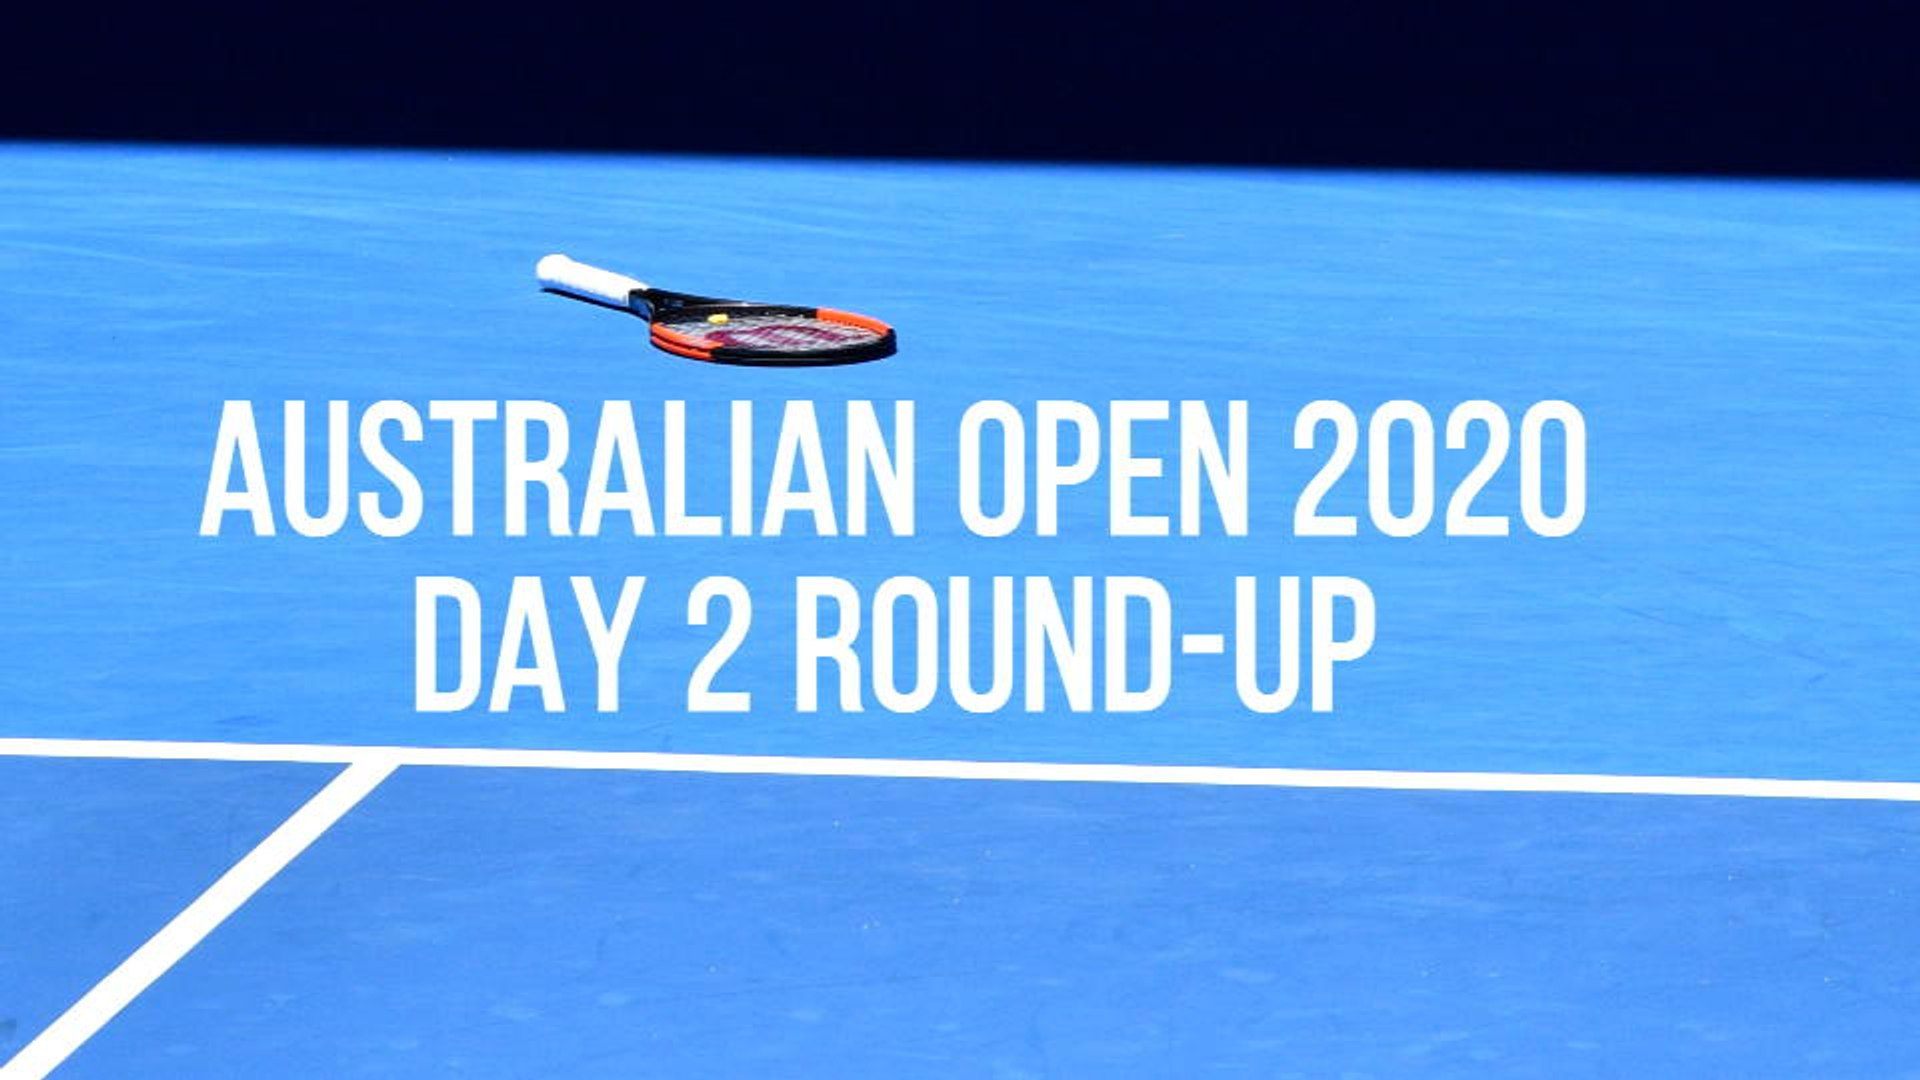 Australian Open Day 2 Round Up